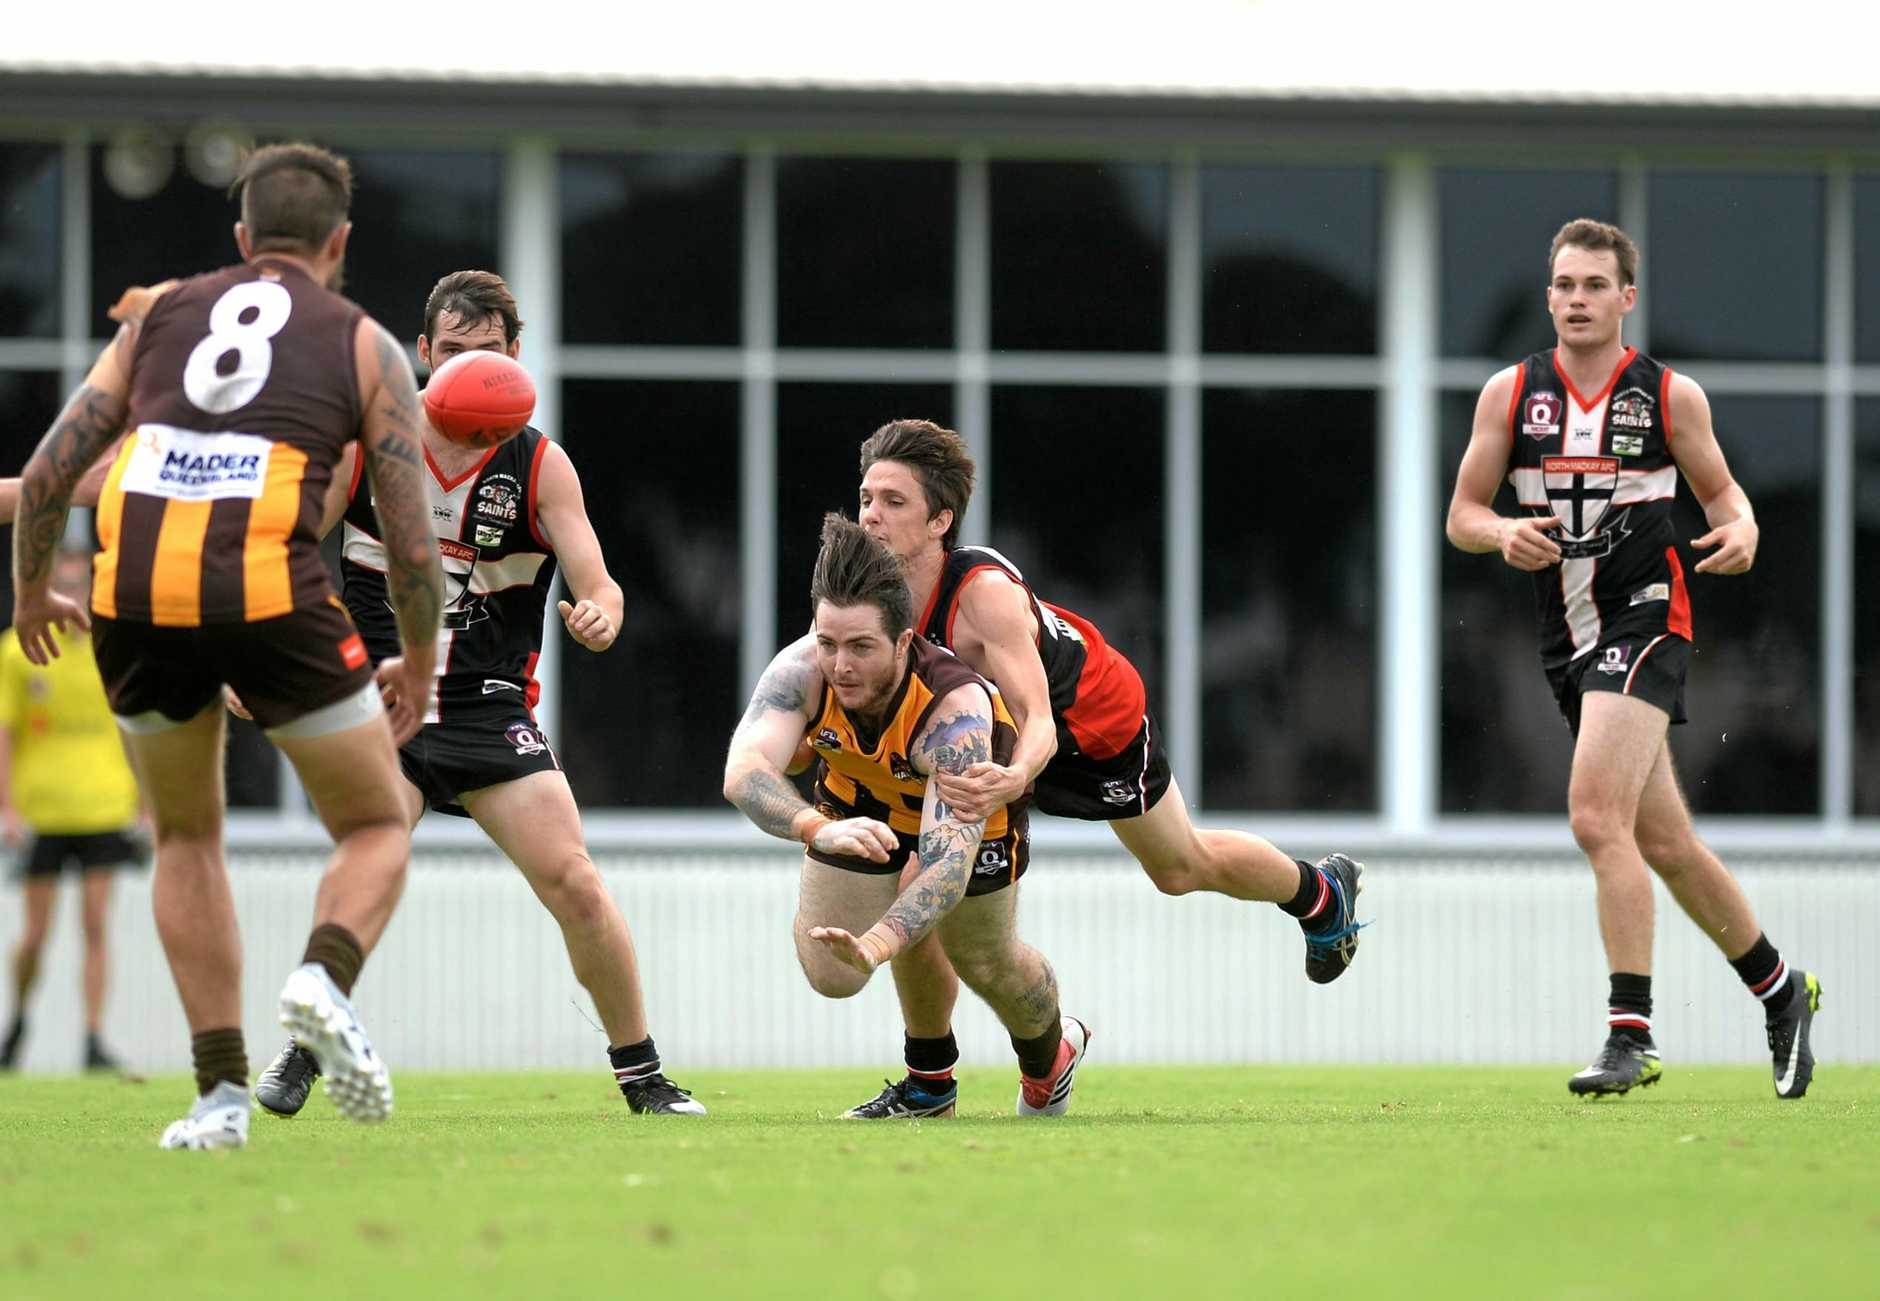 Saints swamped the Hawks.